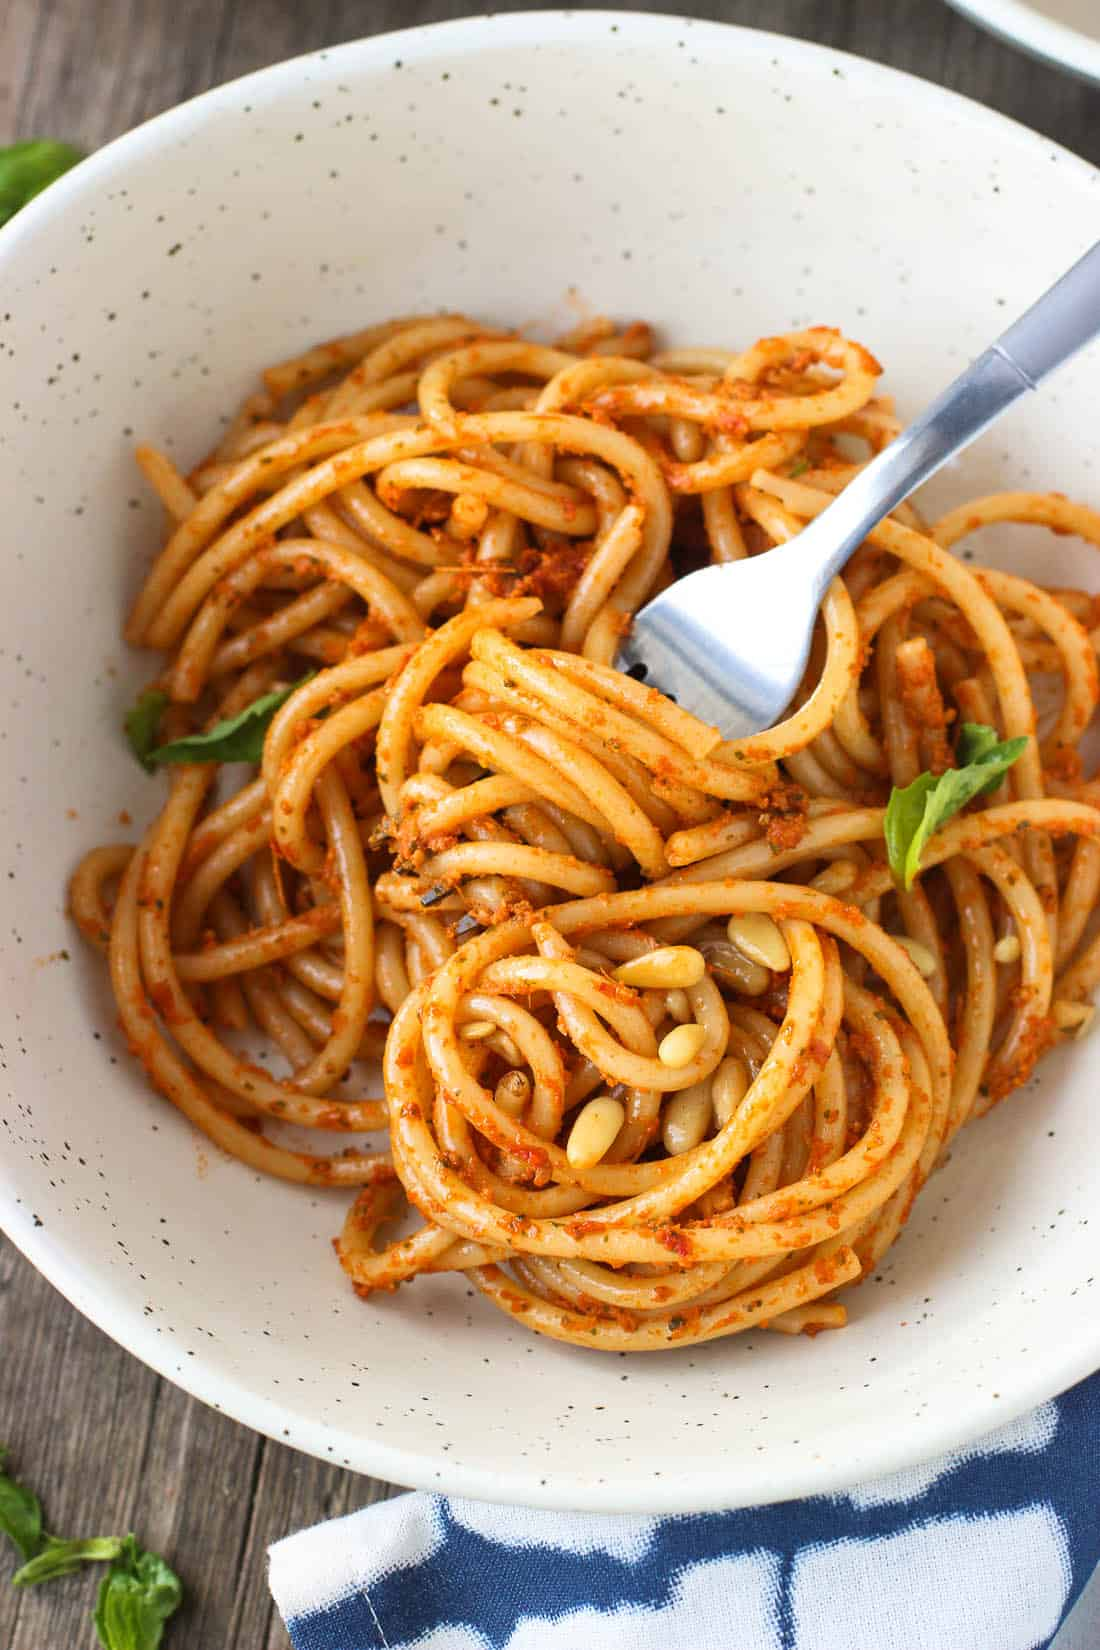 A dish of spaghetti coated with sun-dried tomato pesto garnished with basil leaves and pine nuts